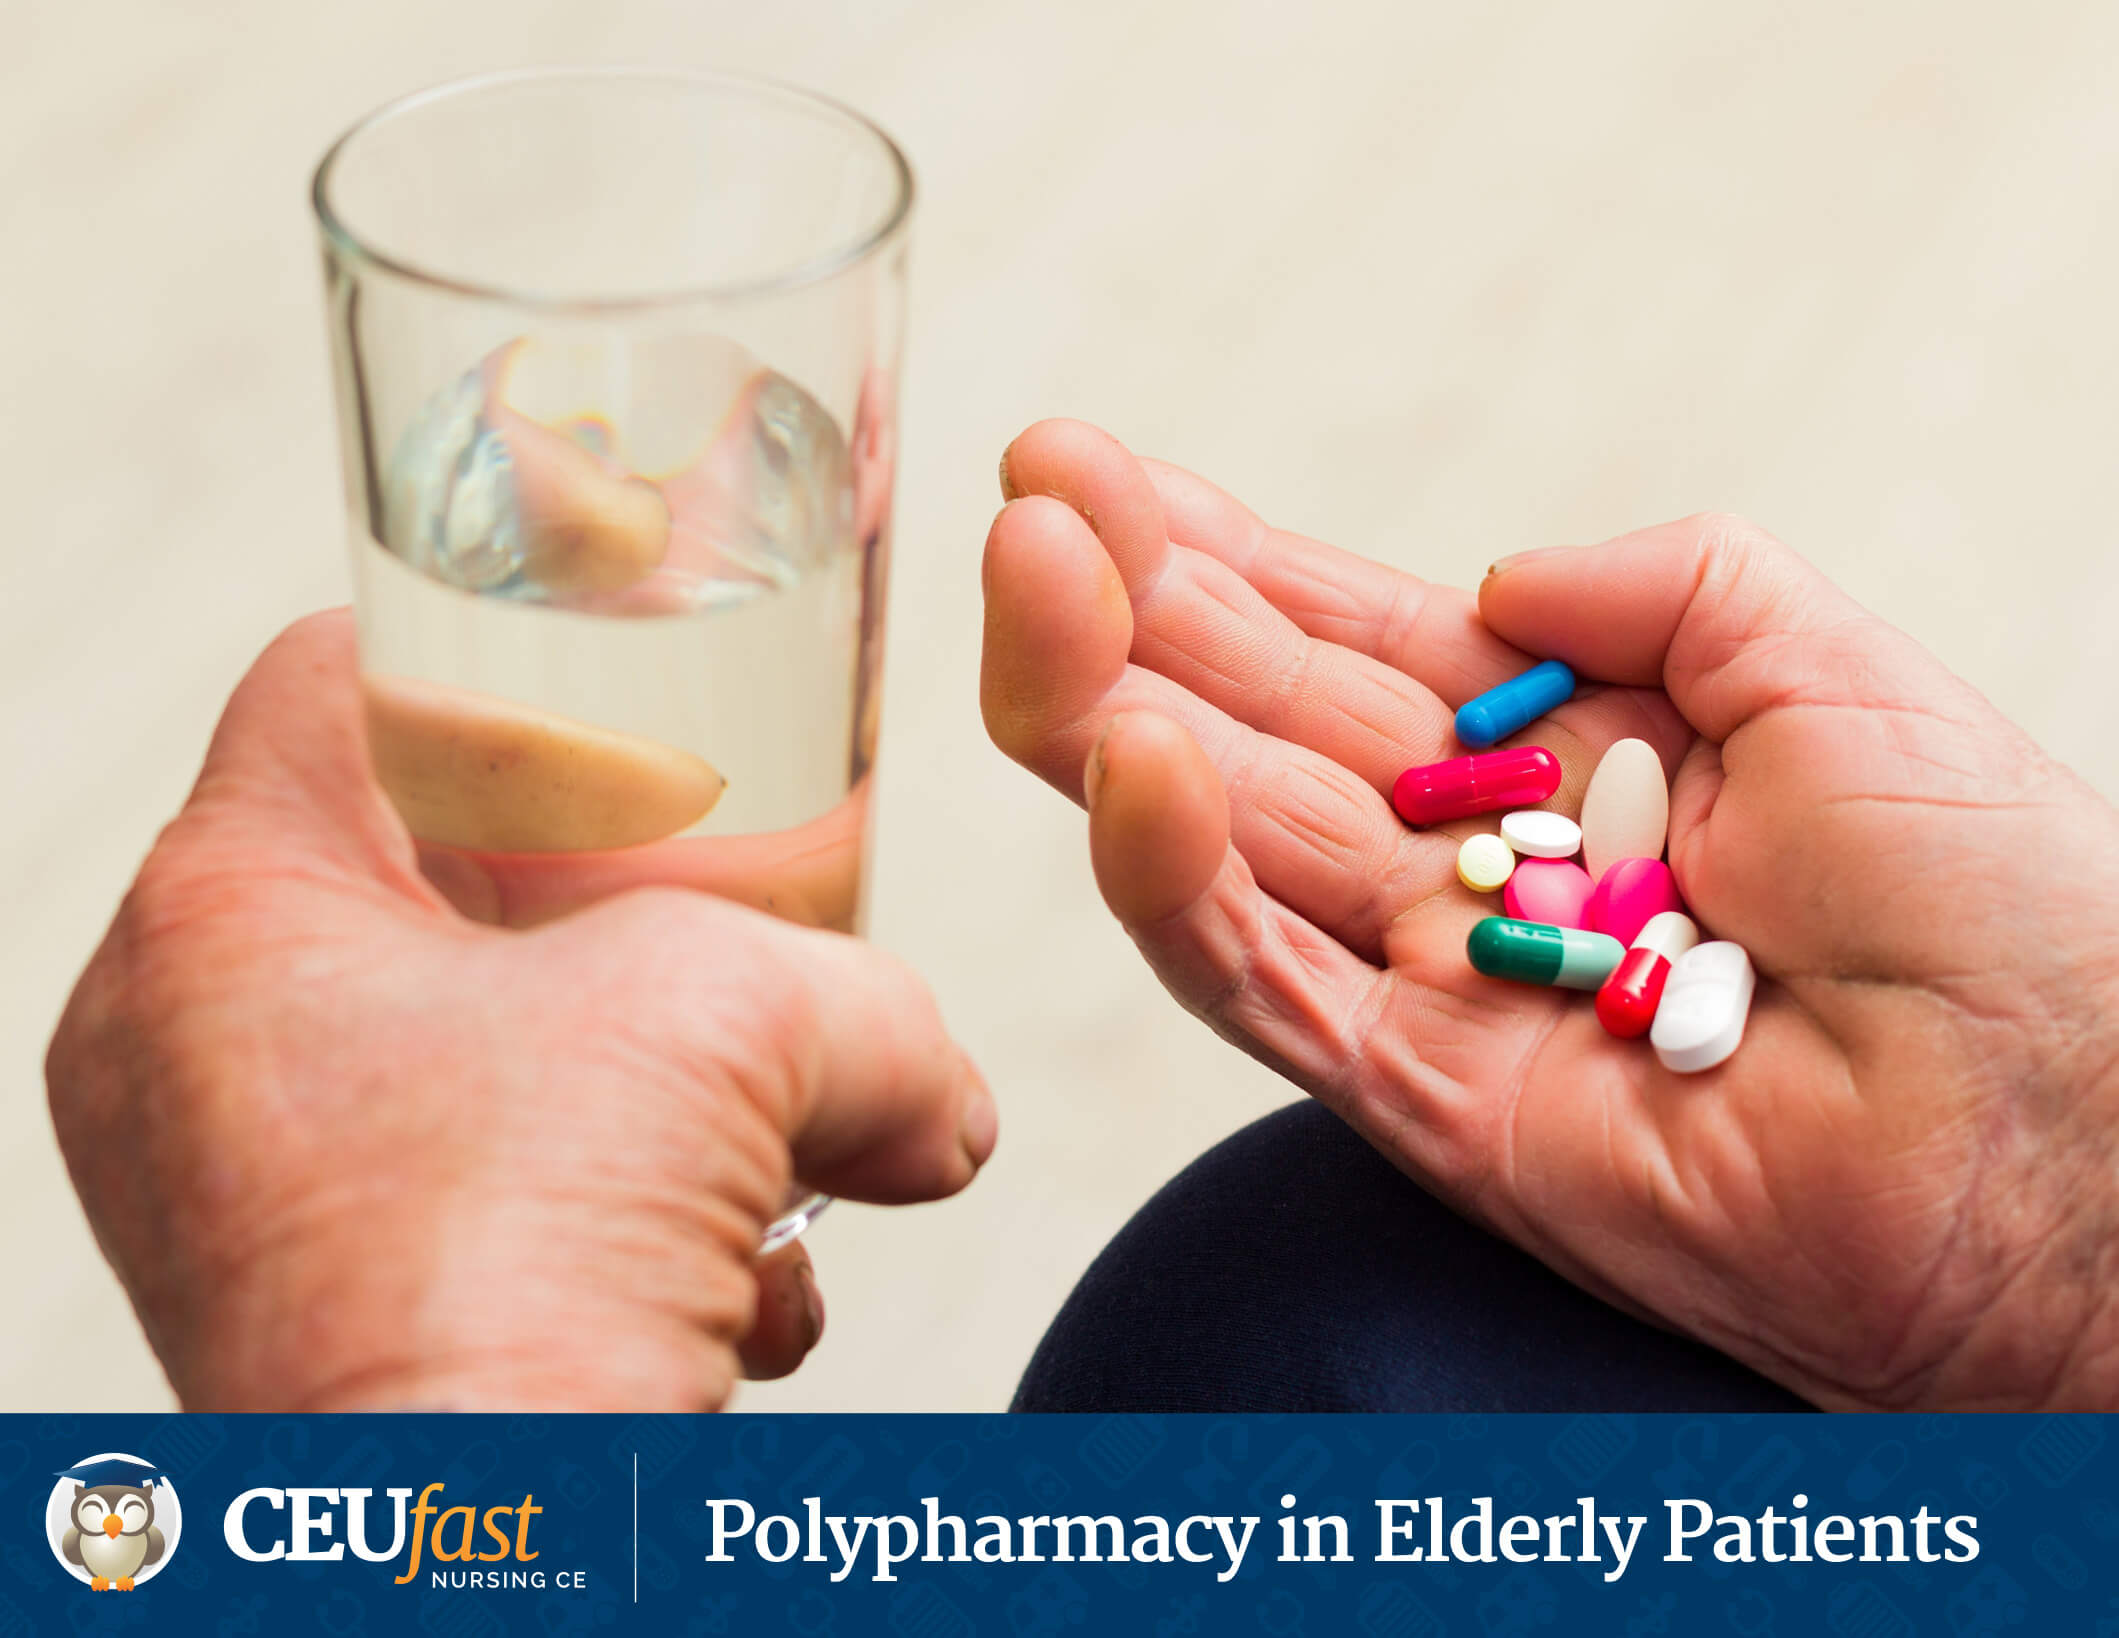 Polypharmacy pill image